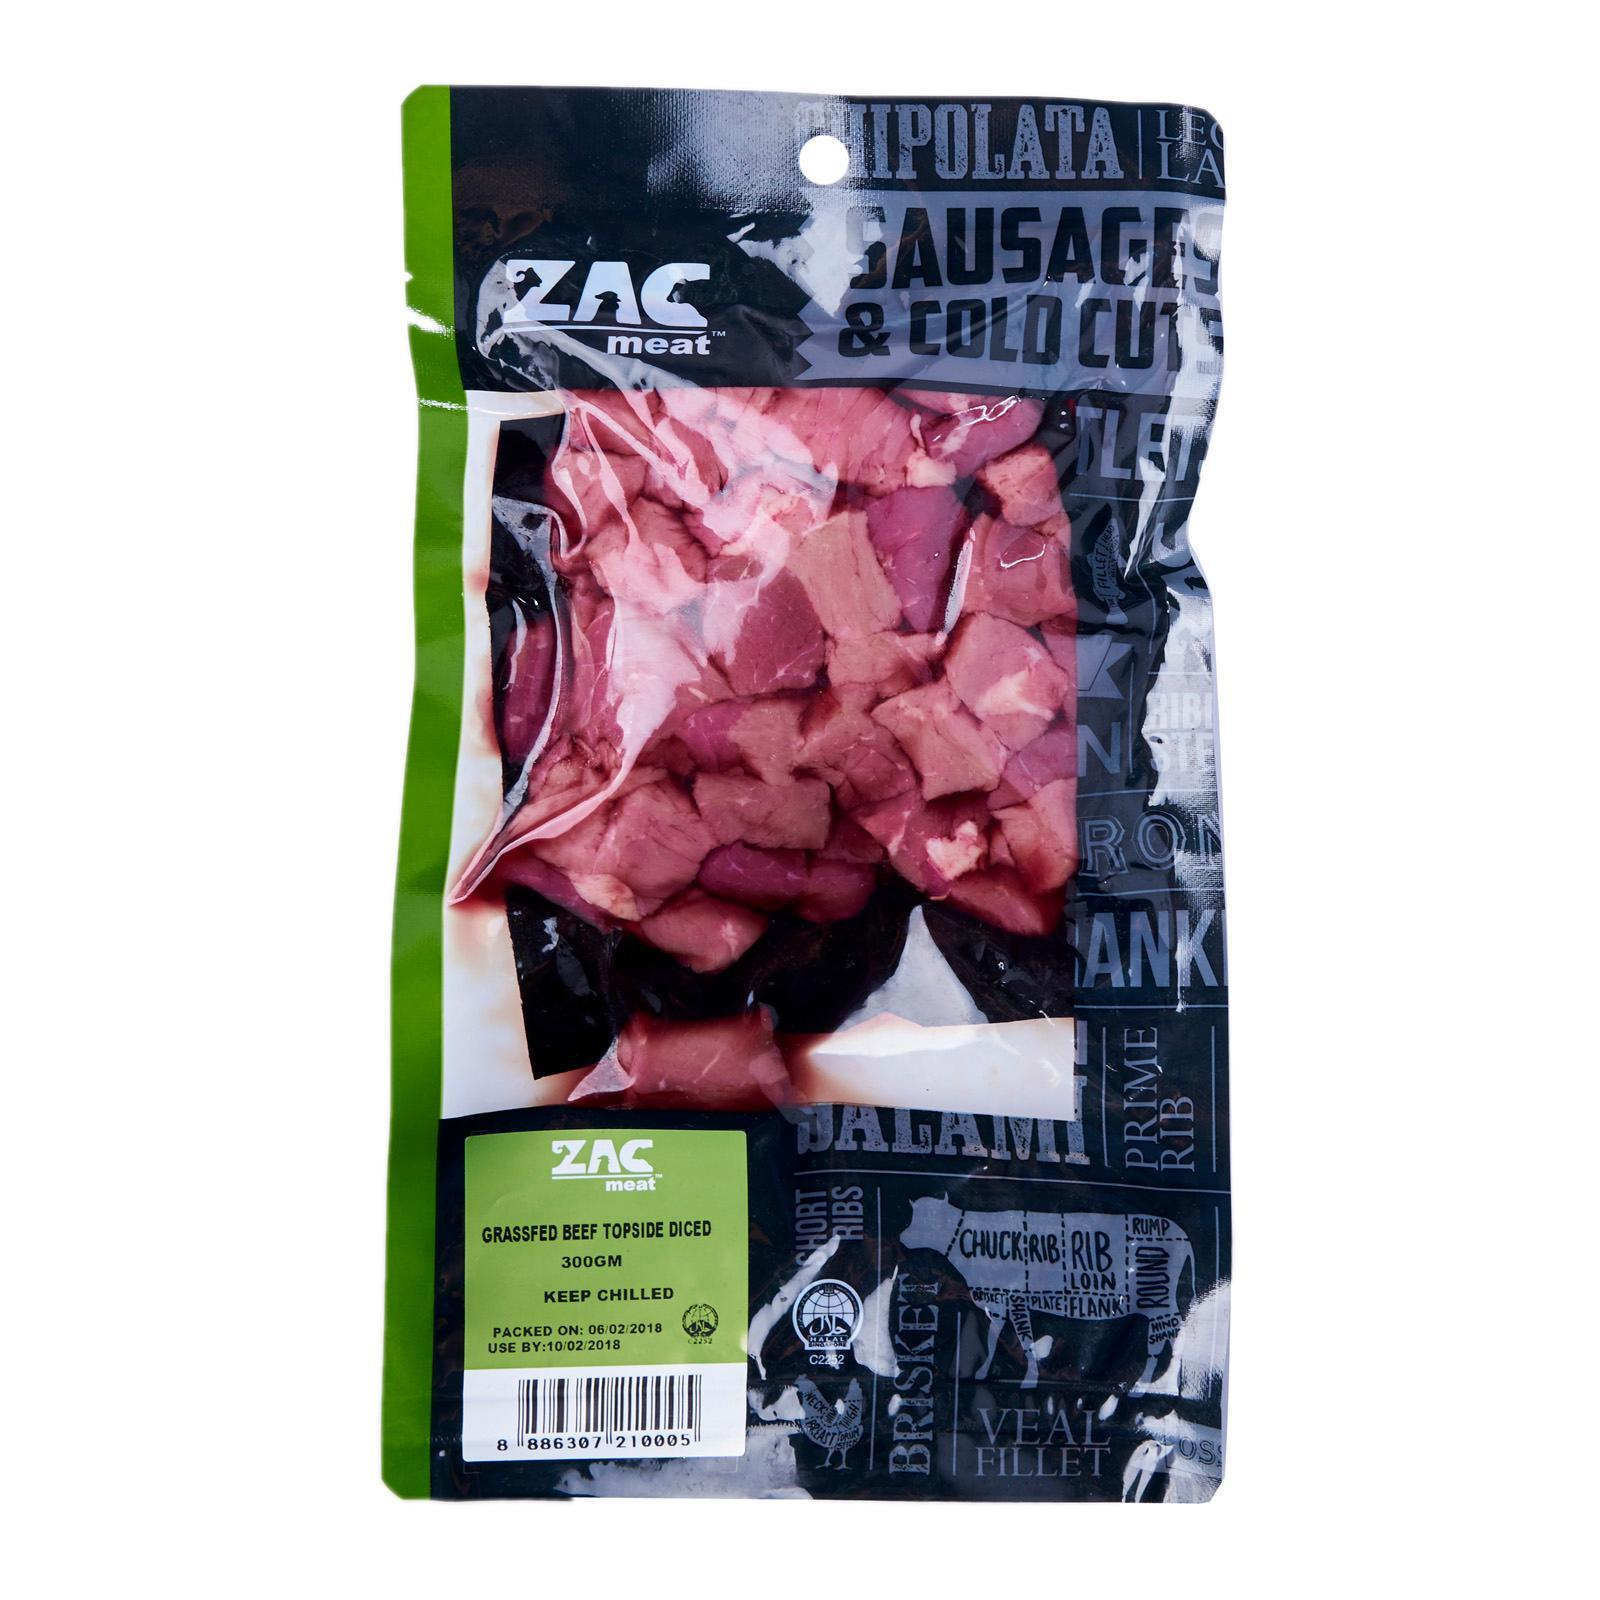 Zac Meat Grass Fed Beef Topside Diced - Australia